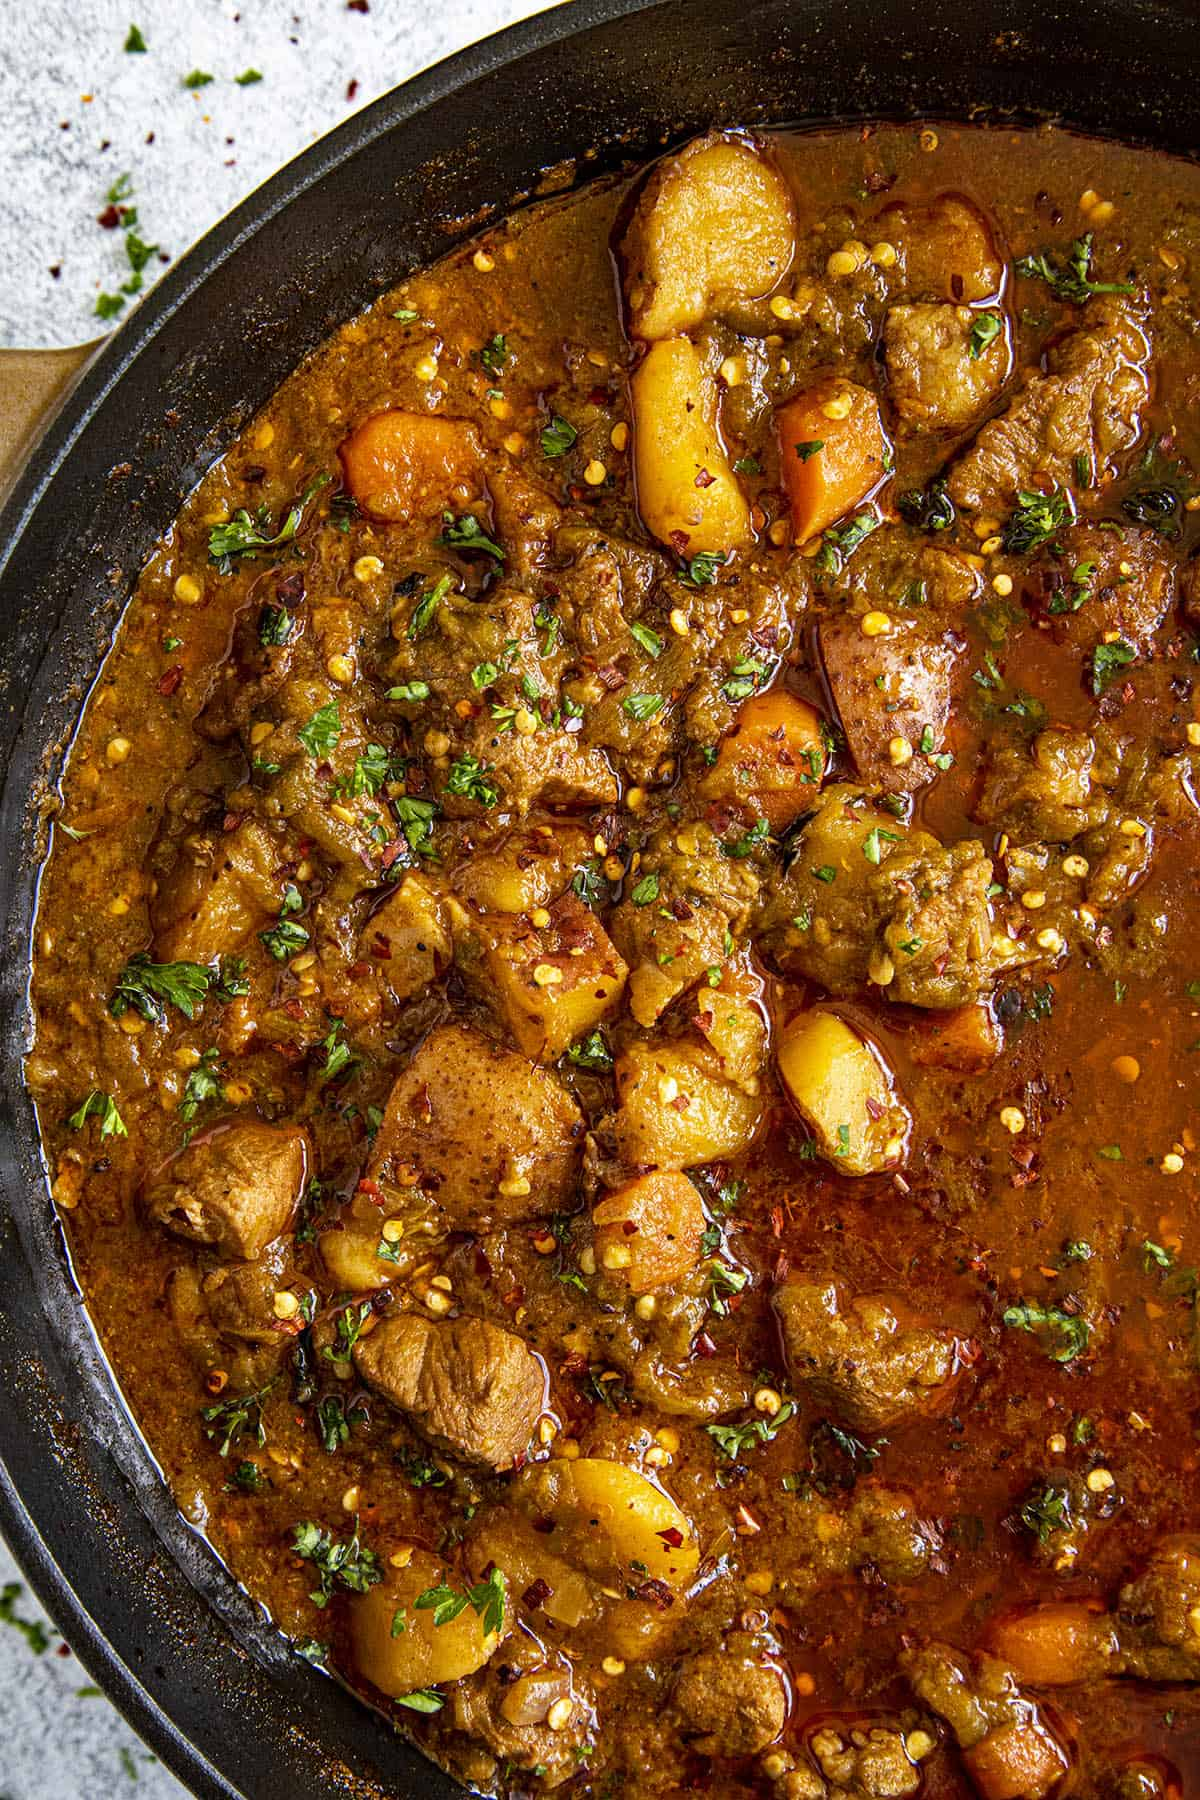 Chunky Green Chili Stew in a pot with lots of pork and potatoes